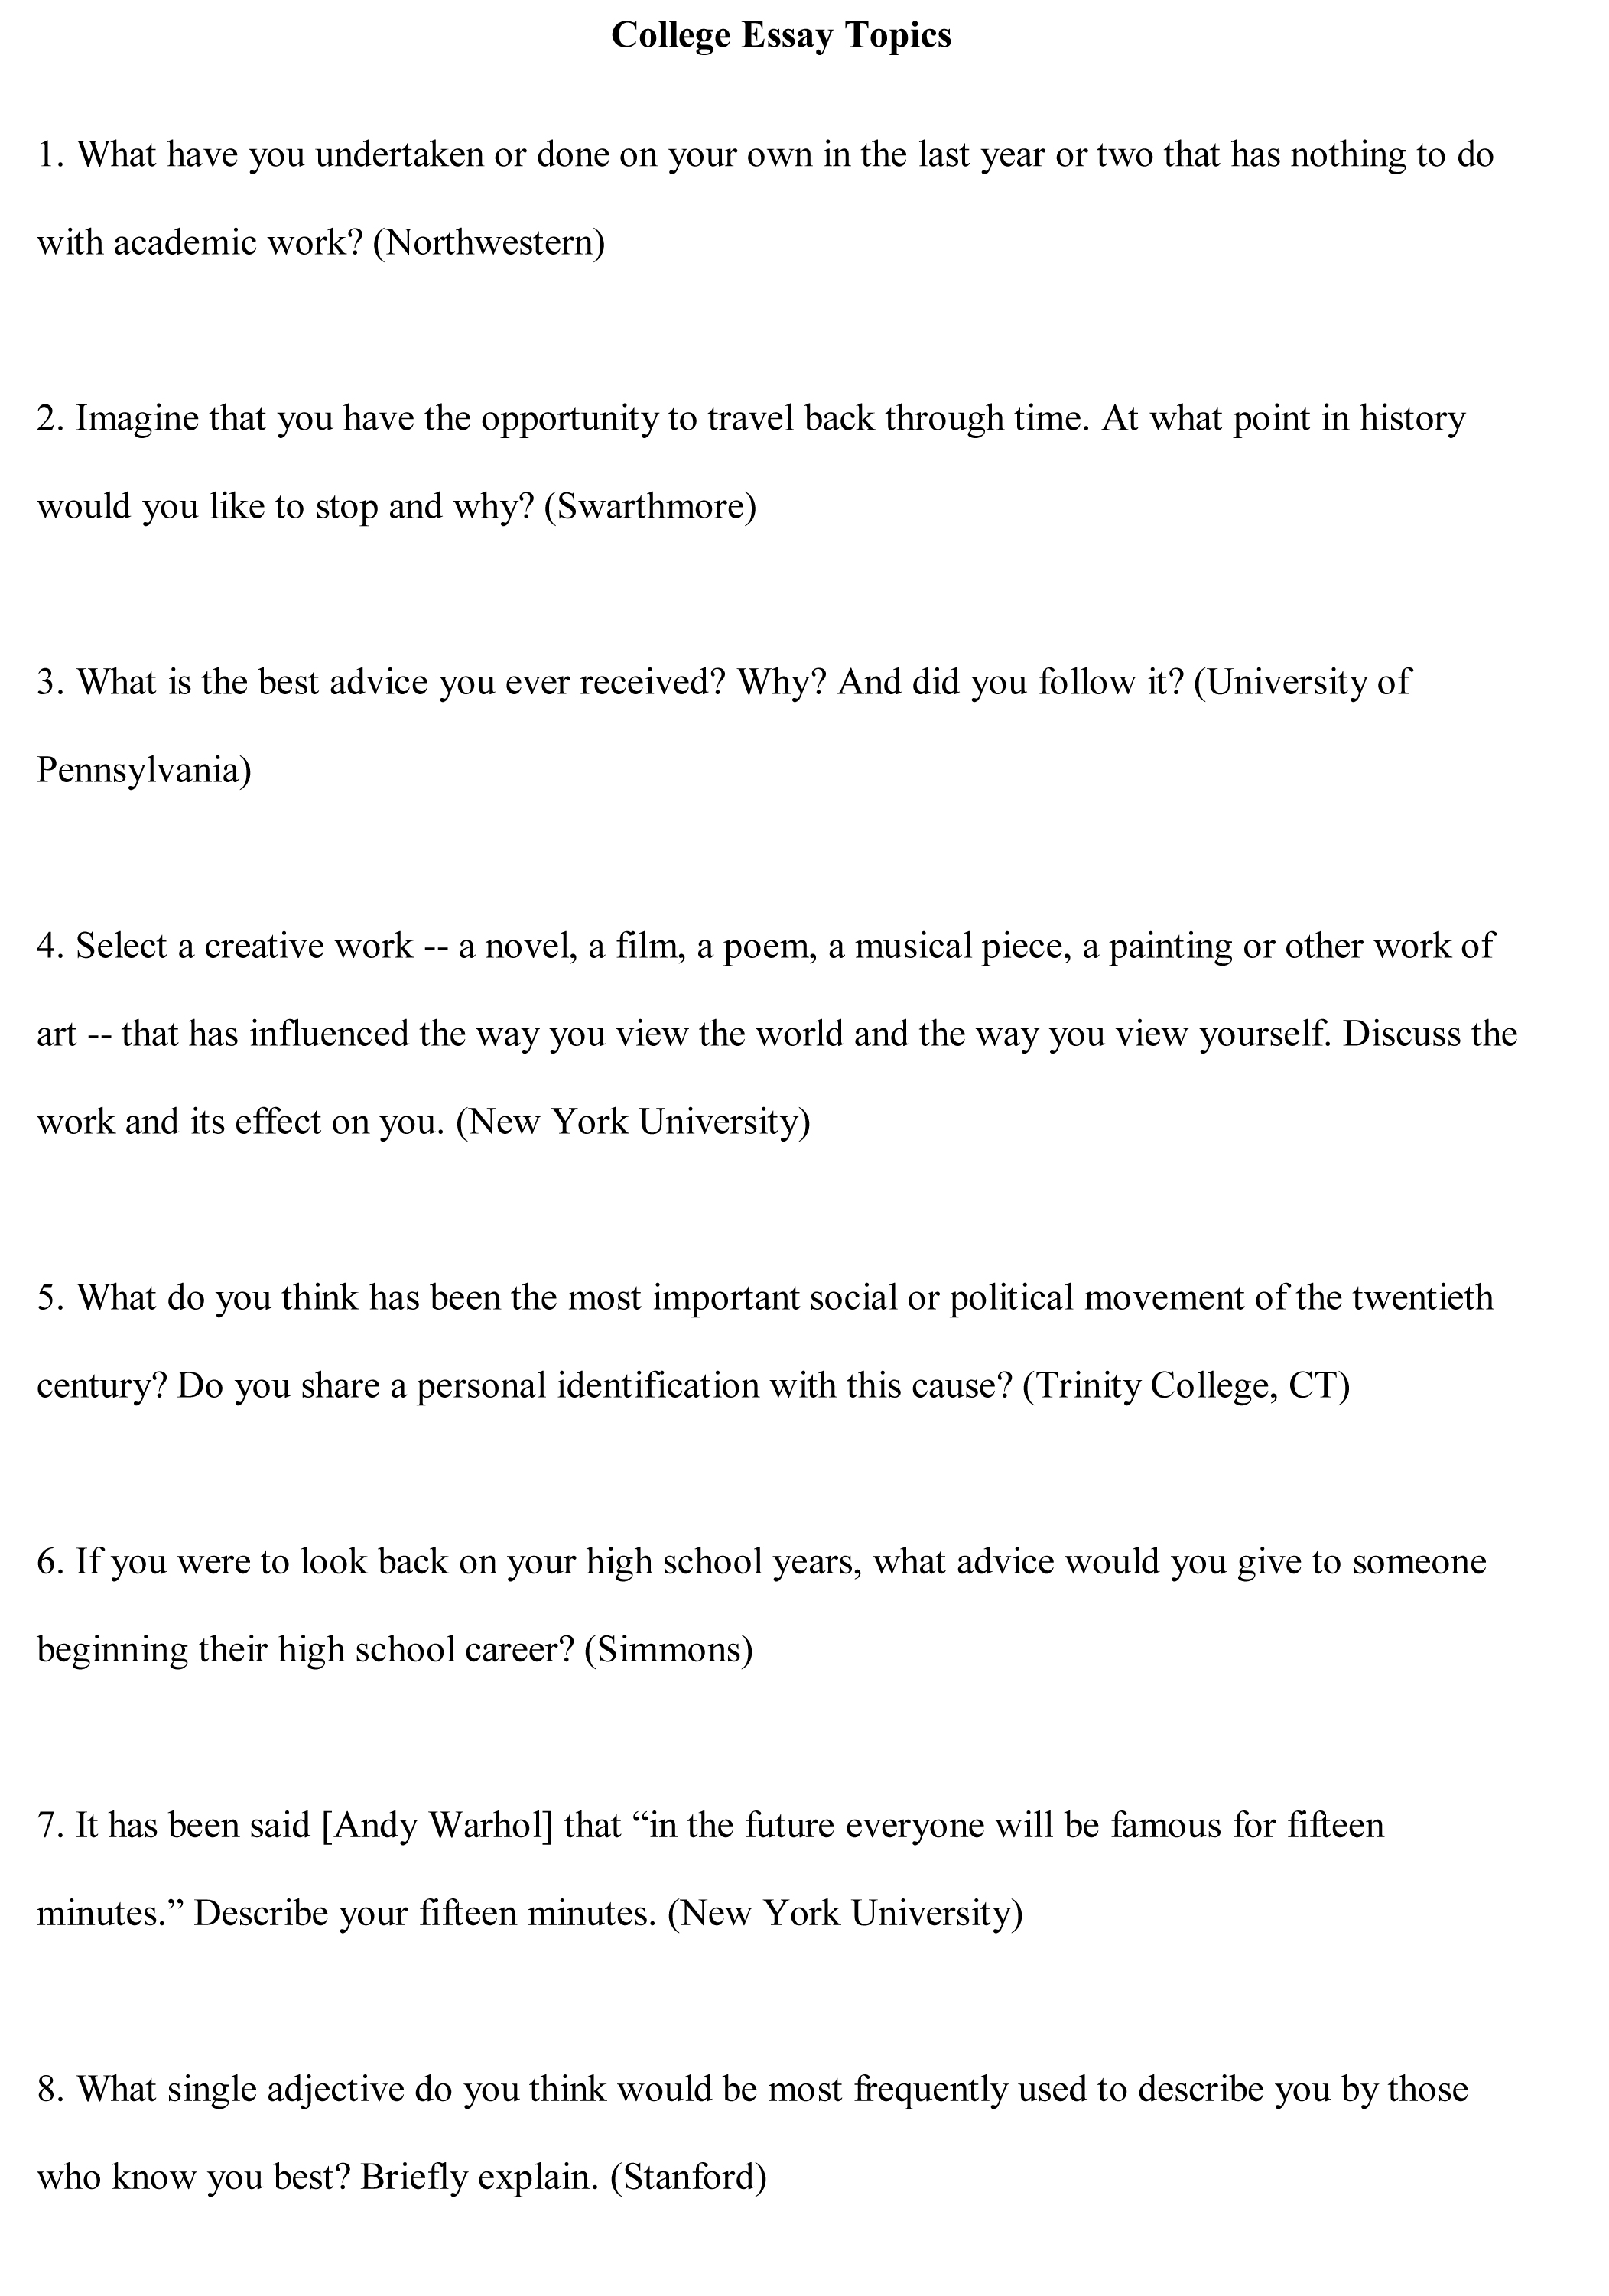 003 College Essay Topics Free Sample1 Prompts Impressive Writing Prompt Examples Amherst 2017 Pomona Full